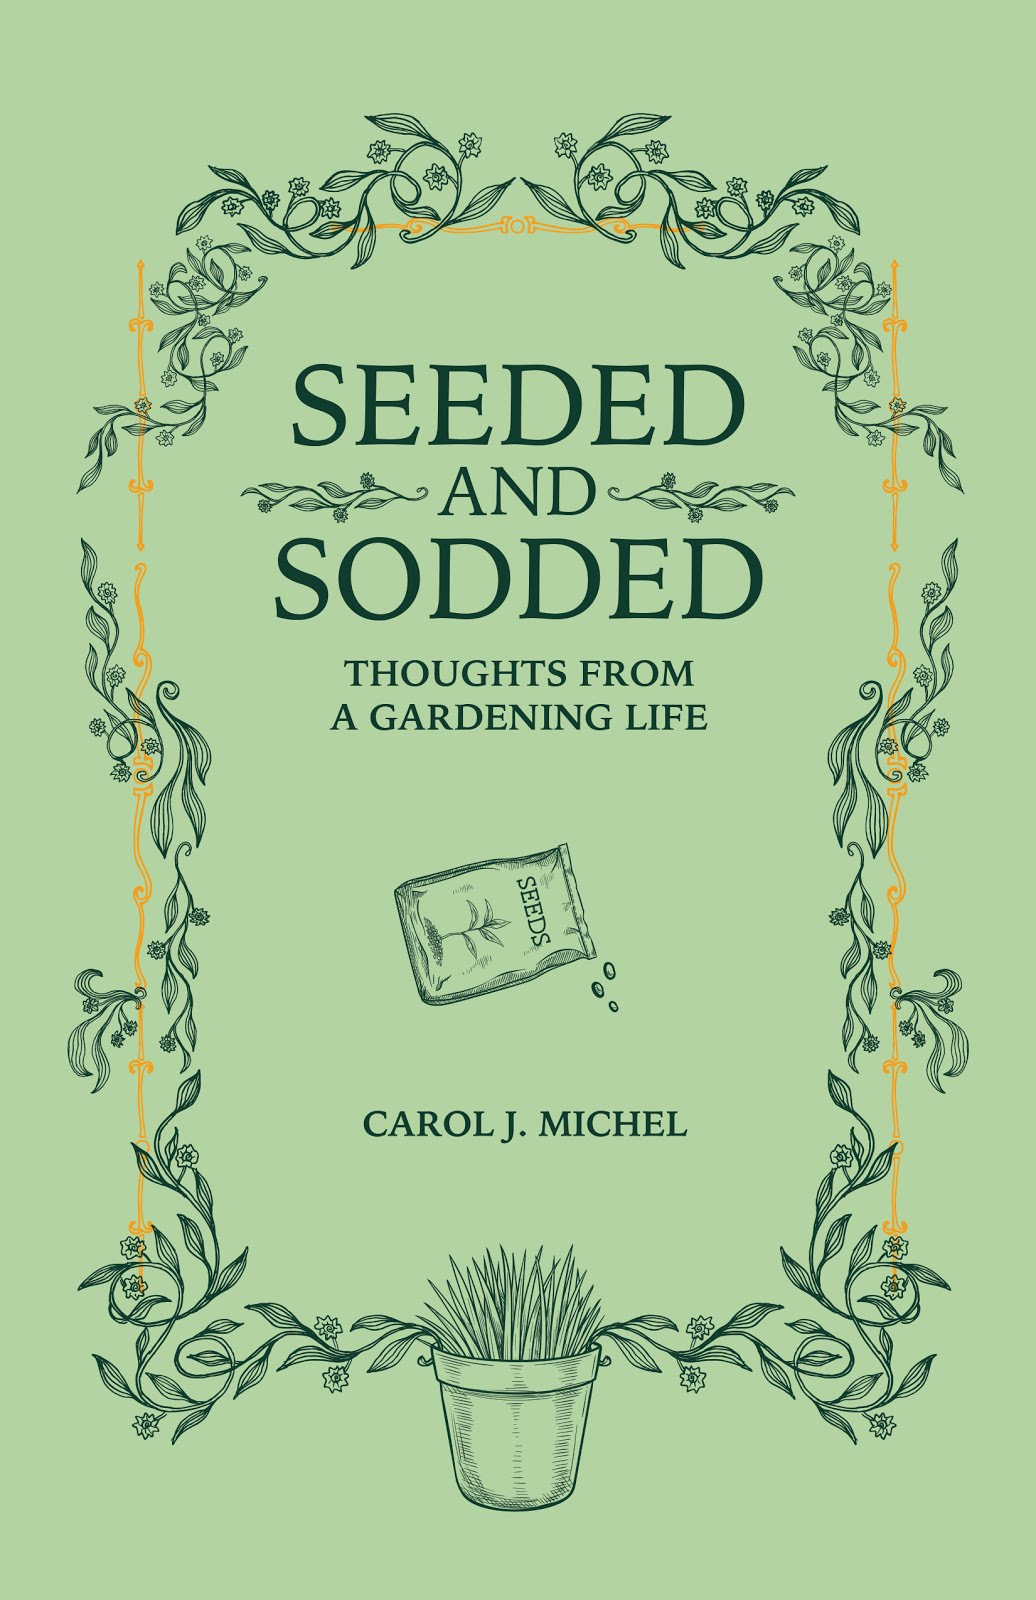 Would you like a signed copy of Seeded and Sodded?